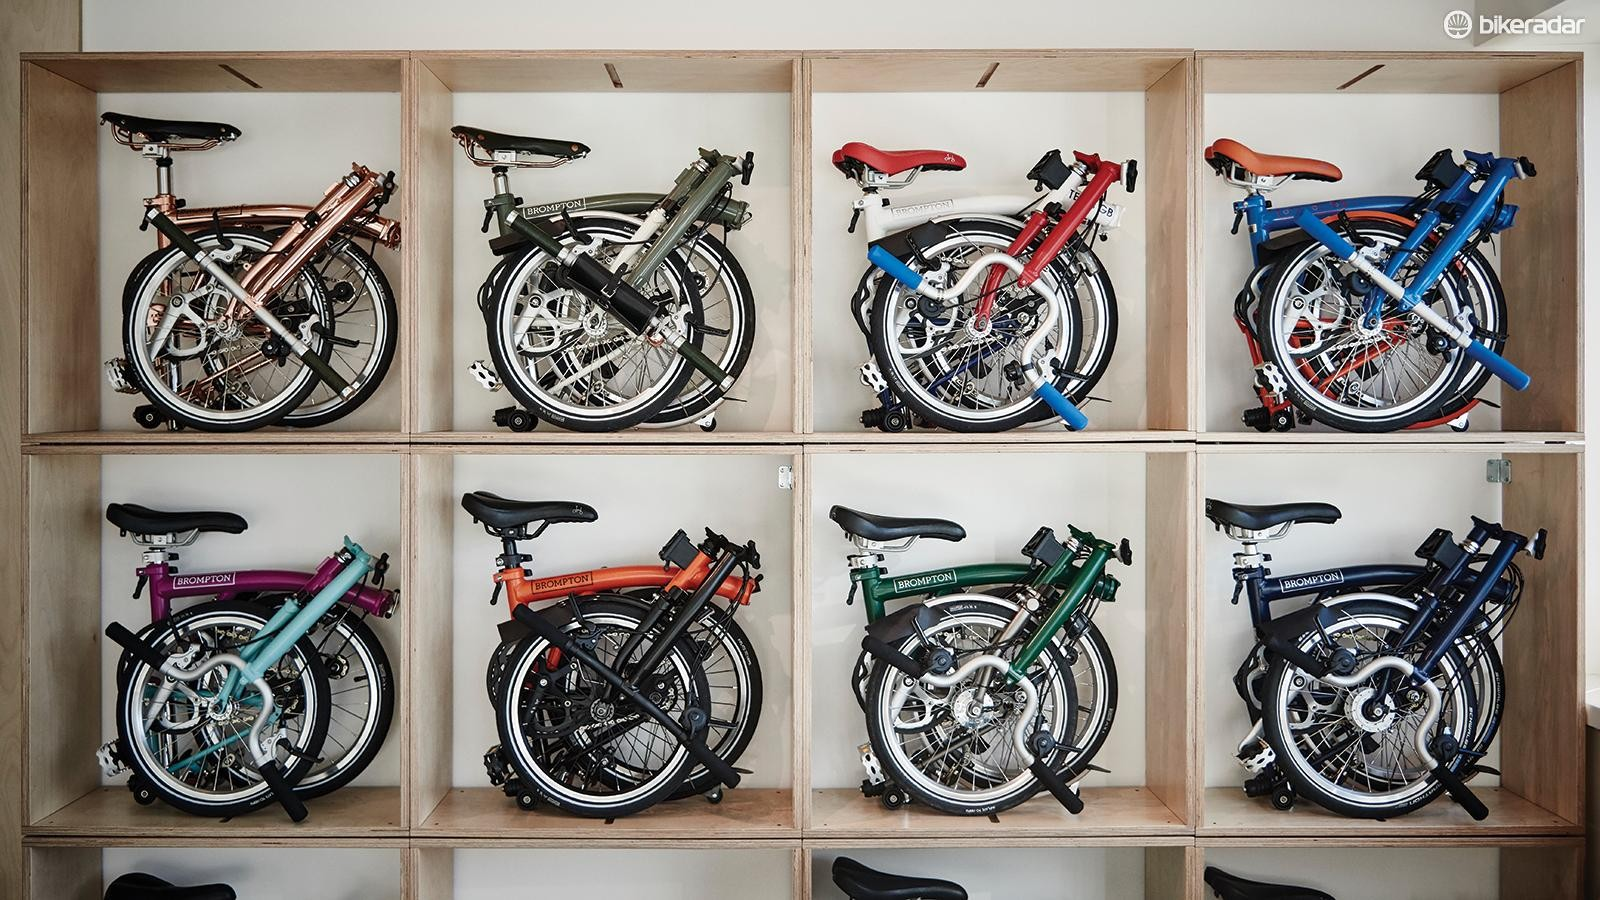 Every Brompton is made to order and the options are endless